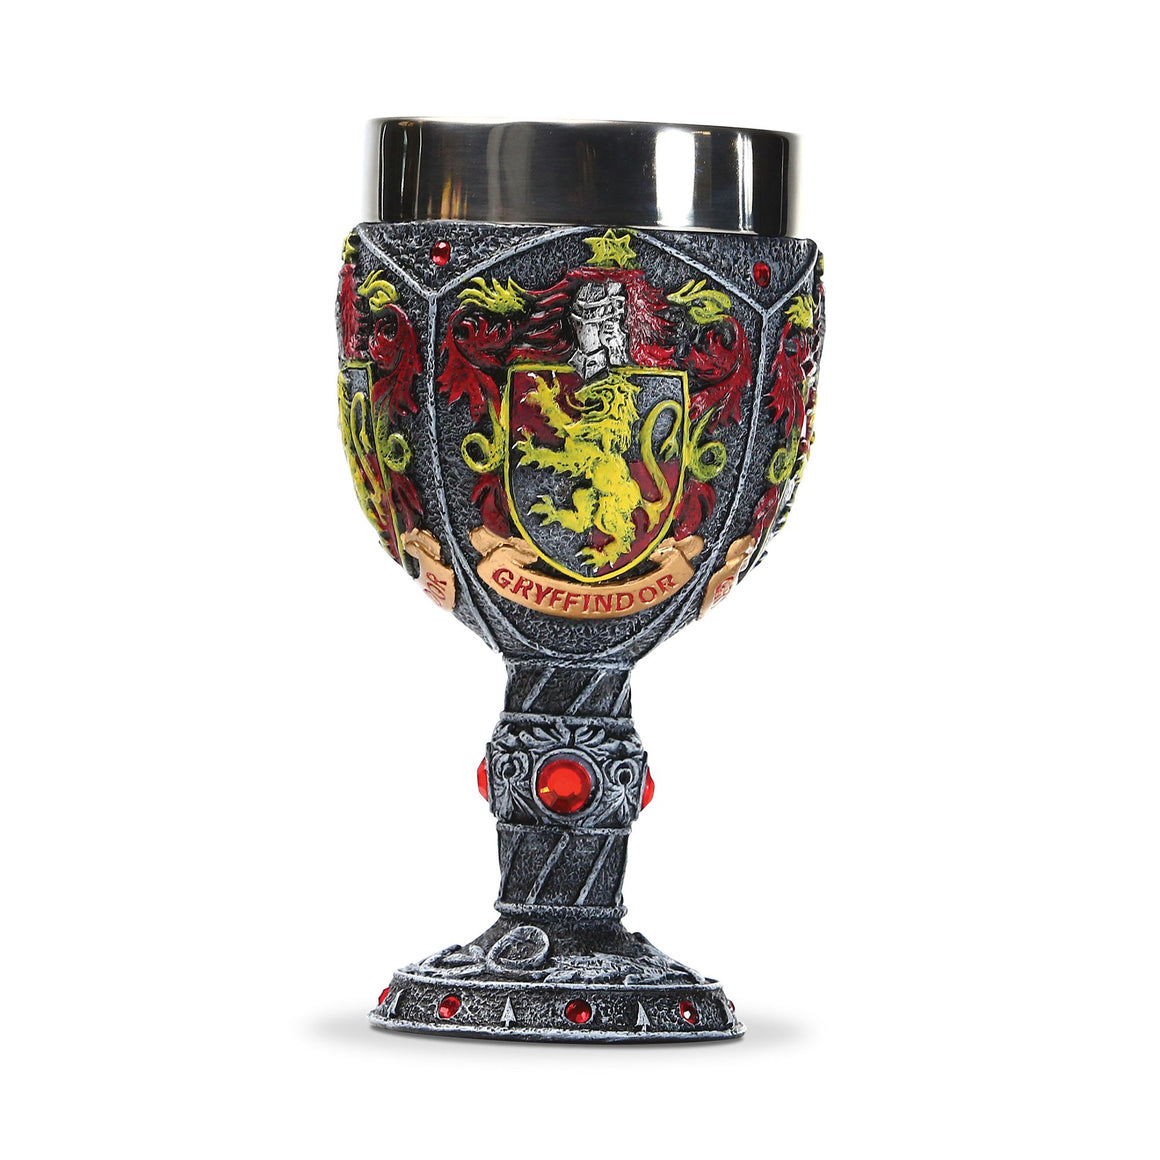 Gryffindor Decorative Goblet - The Wizarding World of Harry Potter